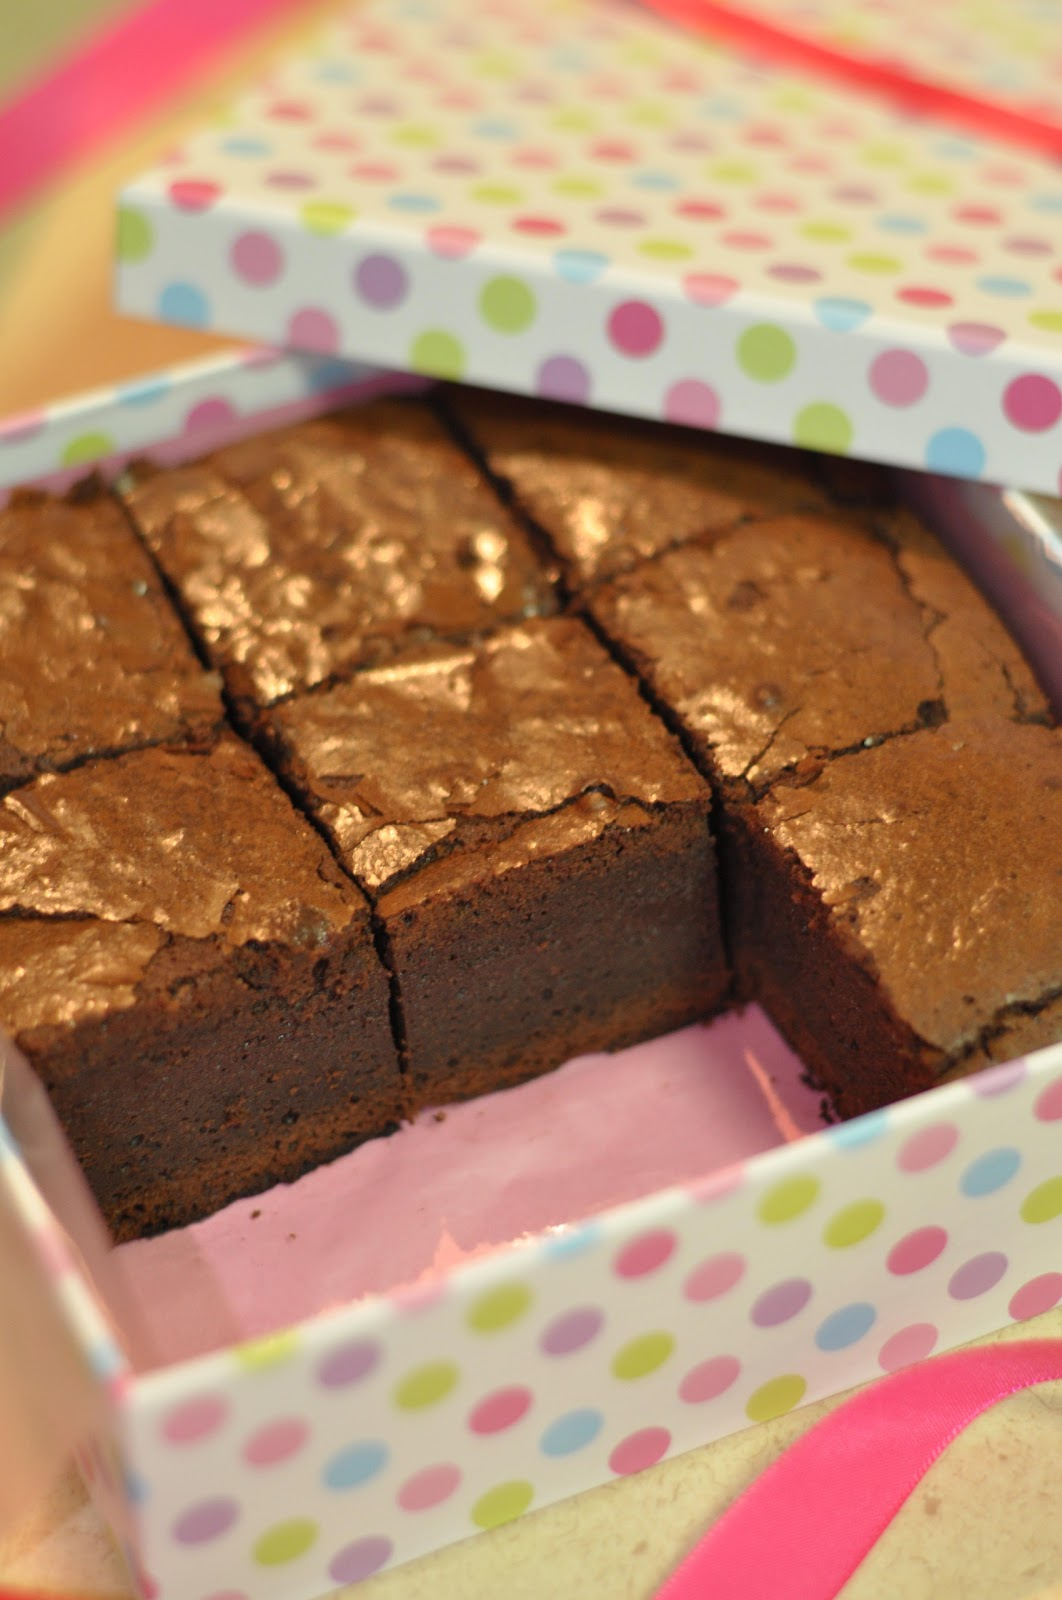 Jane's Kitchen: Chocolate Fudge Brownies